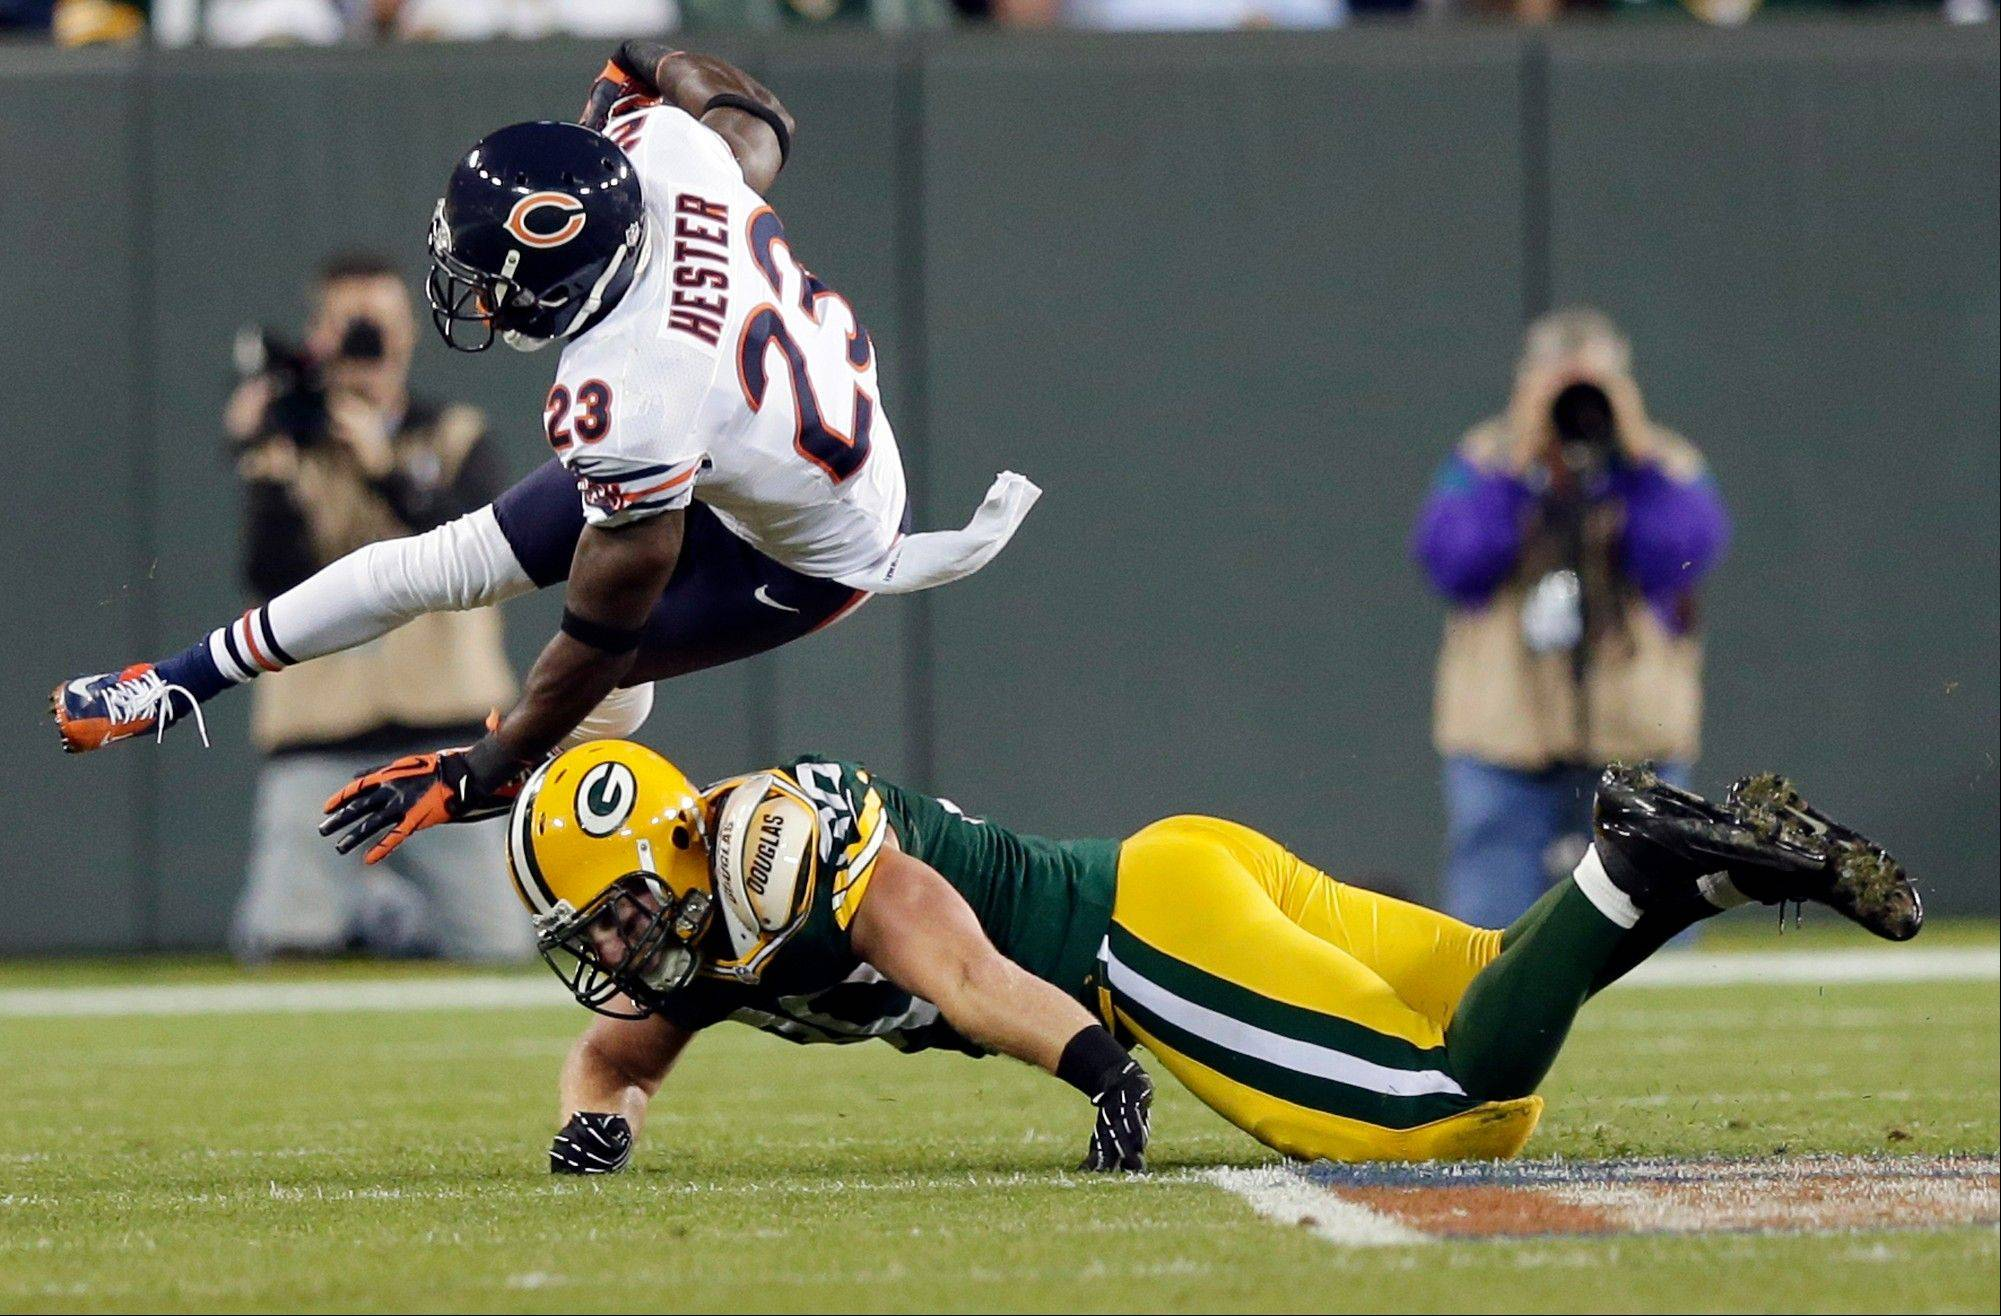 Chicago Bears' Devin Hester is tackled by Green Bay Packers' John Kuhn on a punt return during the second half.